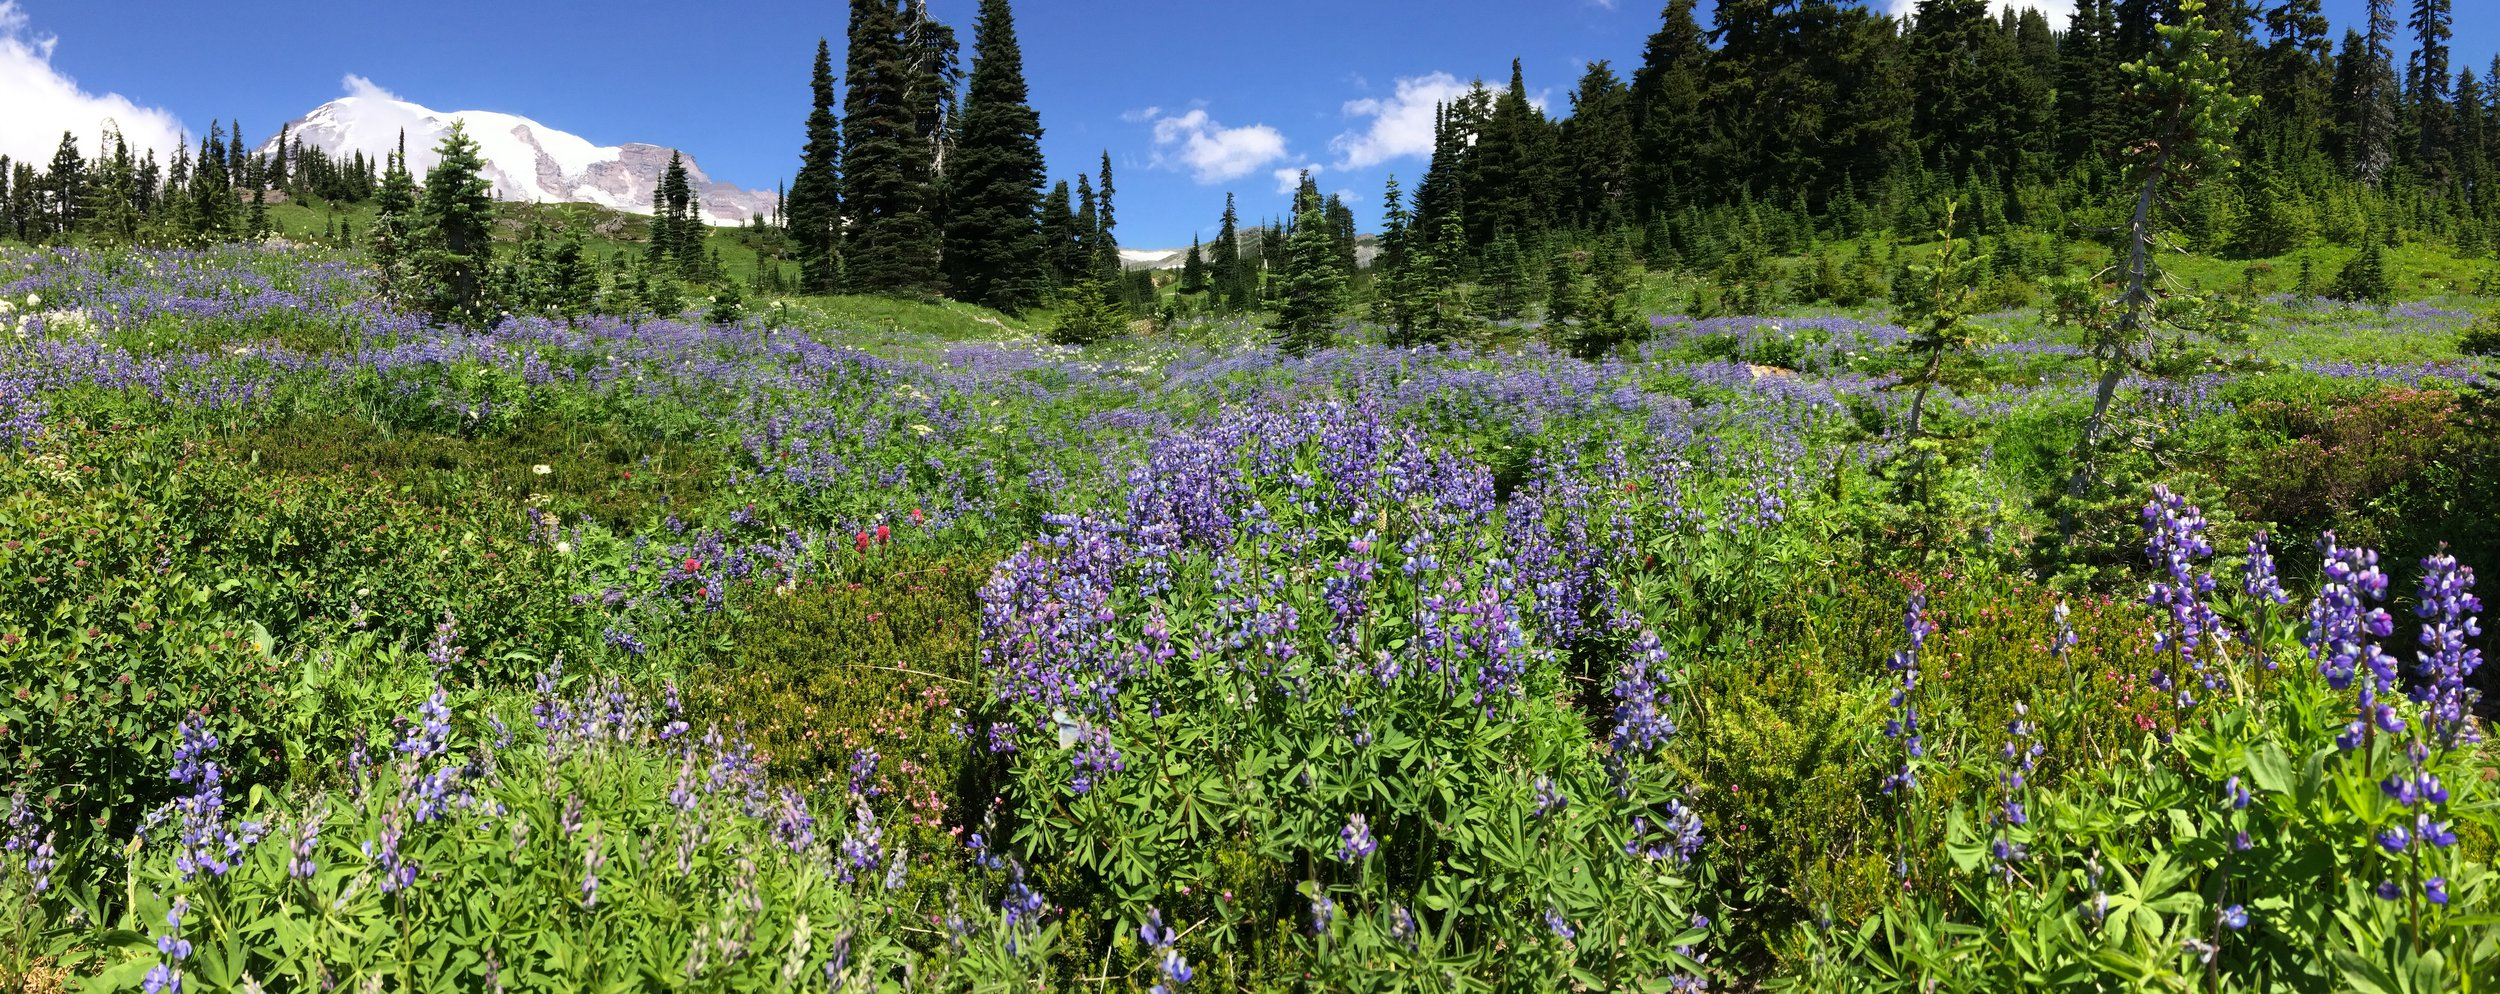 During the summer months, the meadows around Paradise are full of wildflowers.